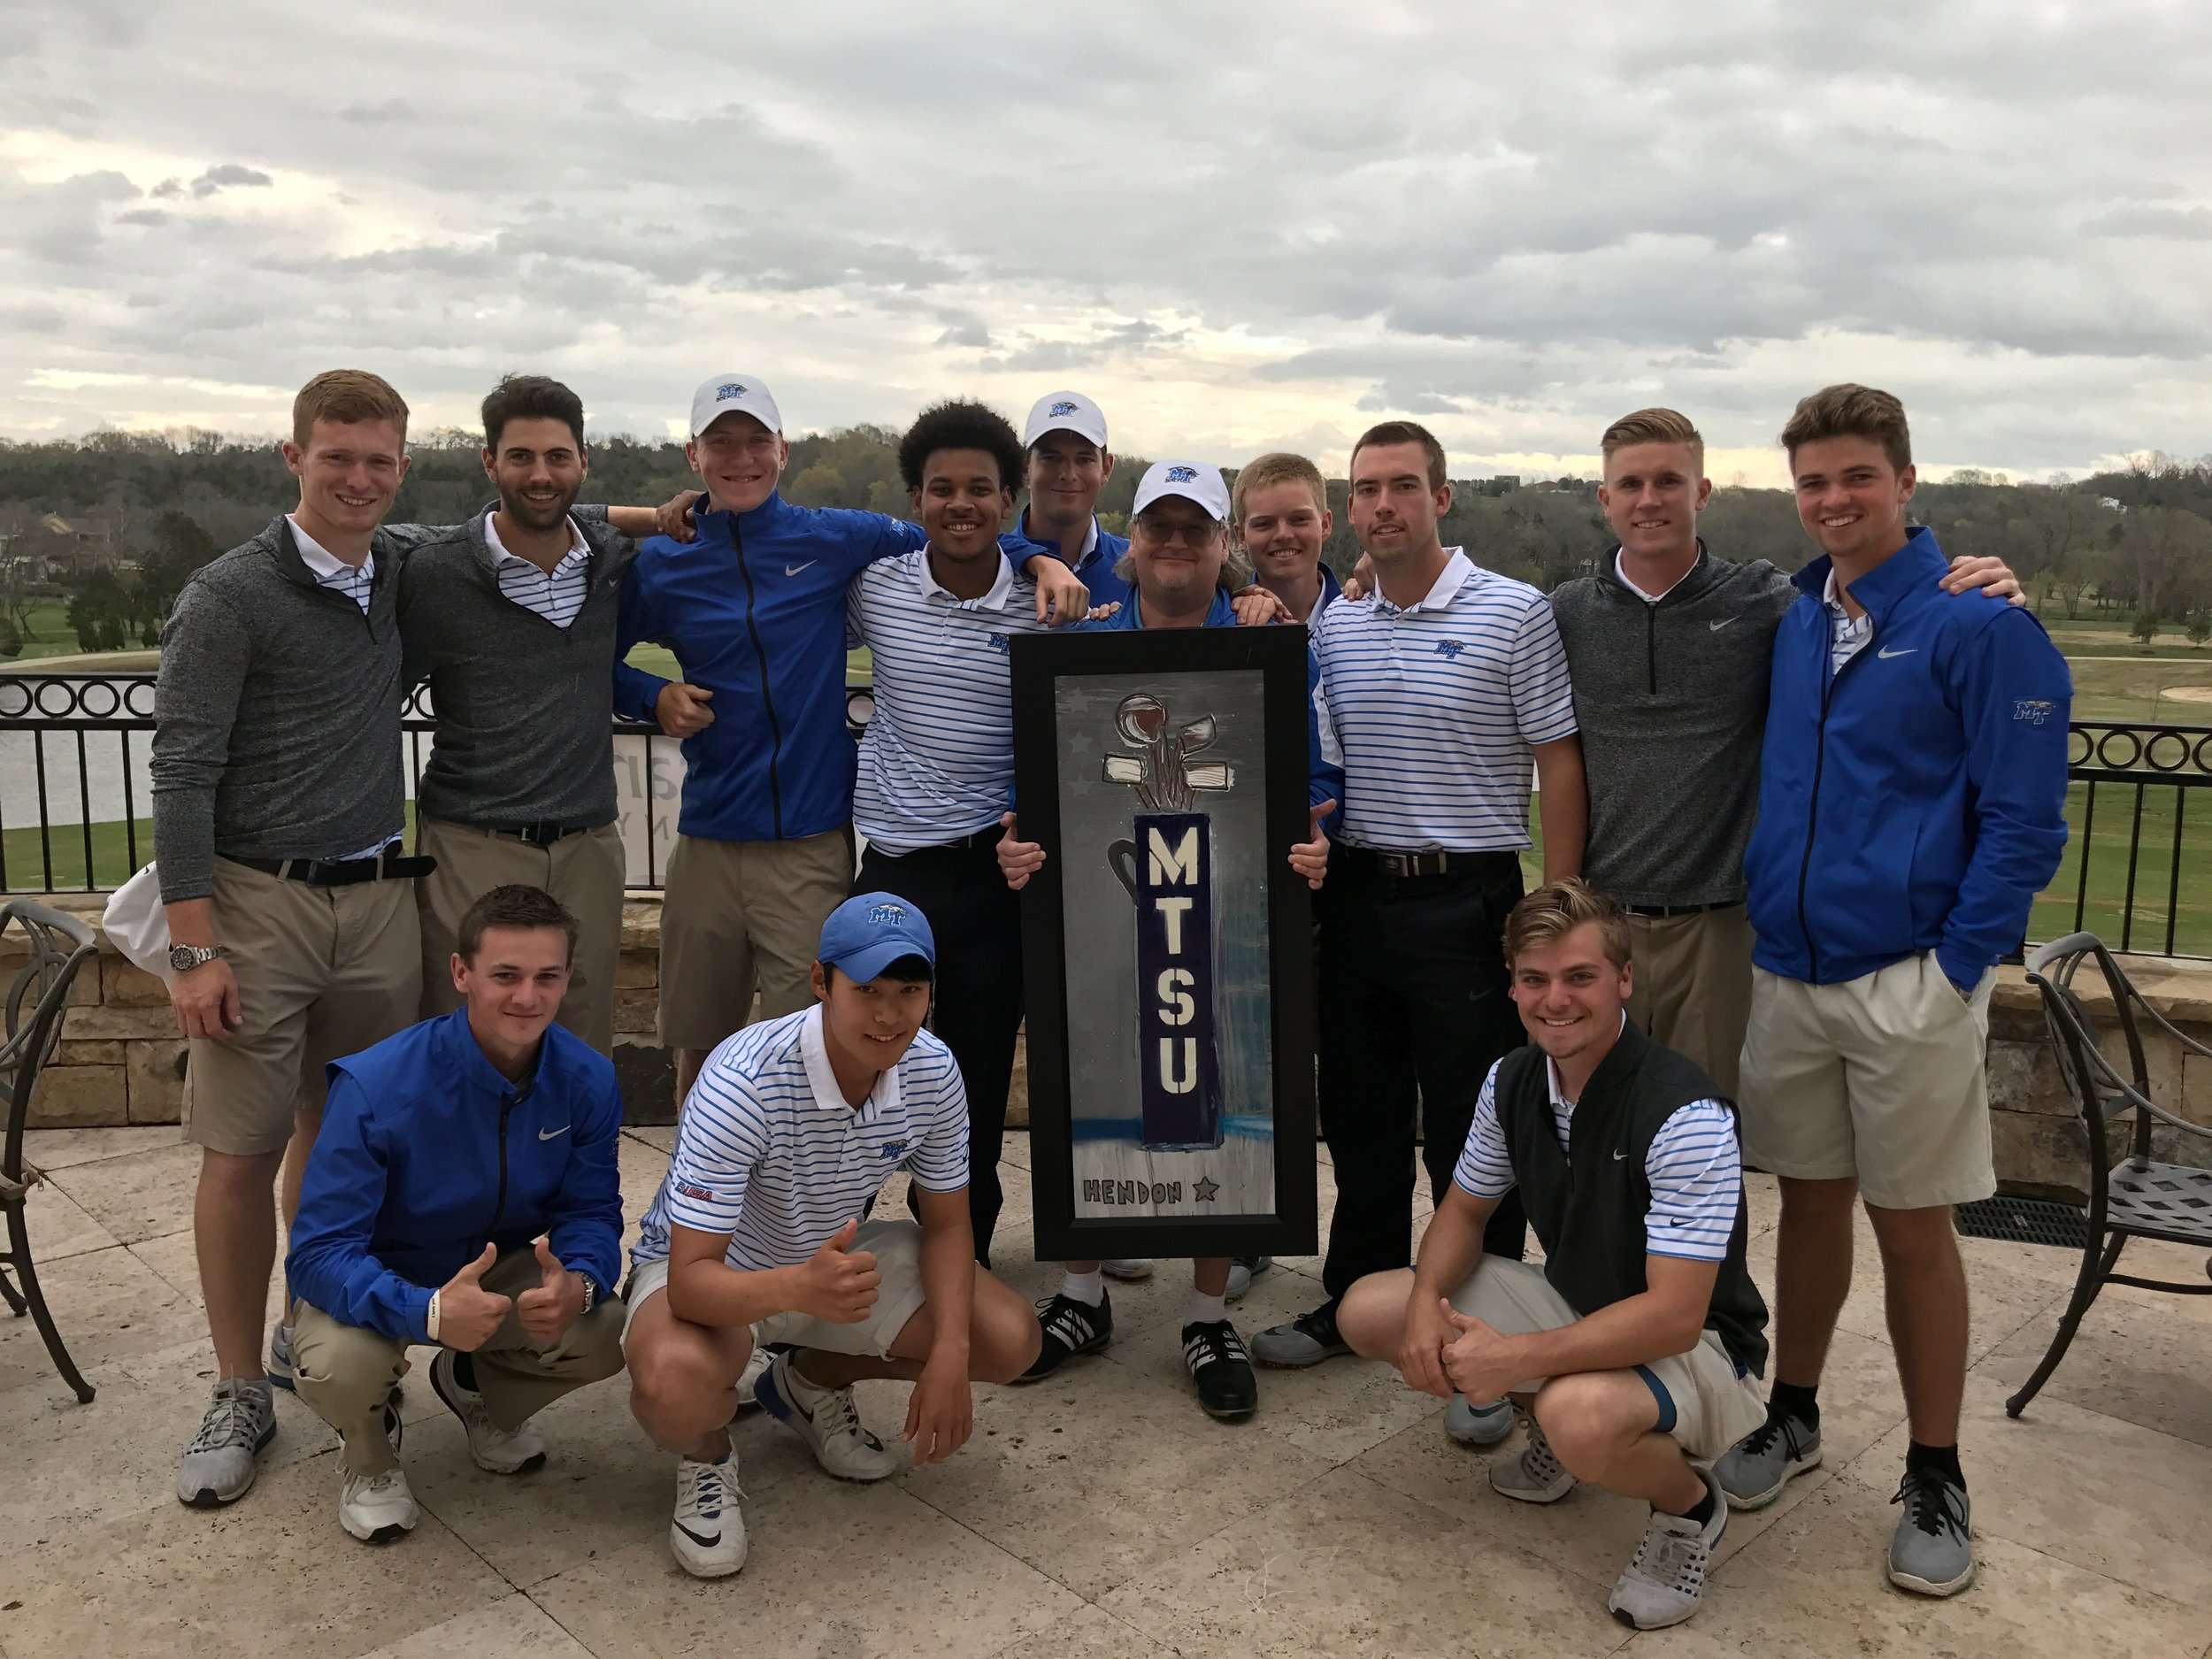 Rob did a golf-themed painting for the MTSU Golf team